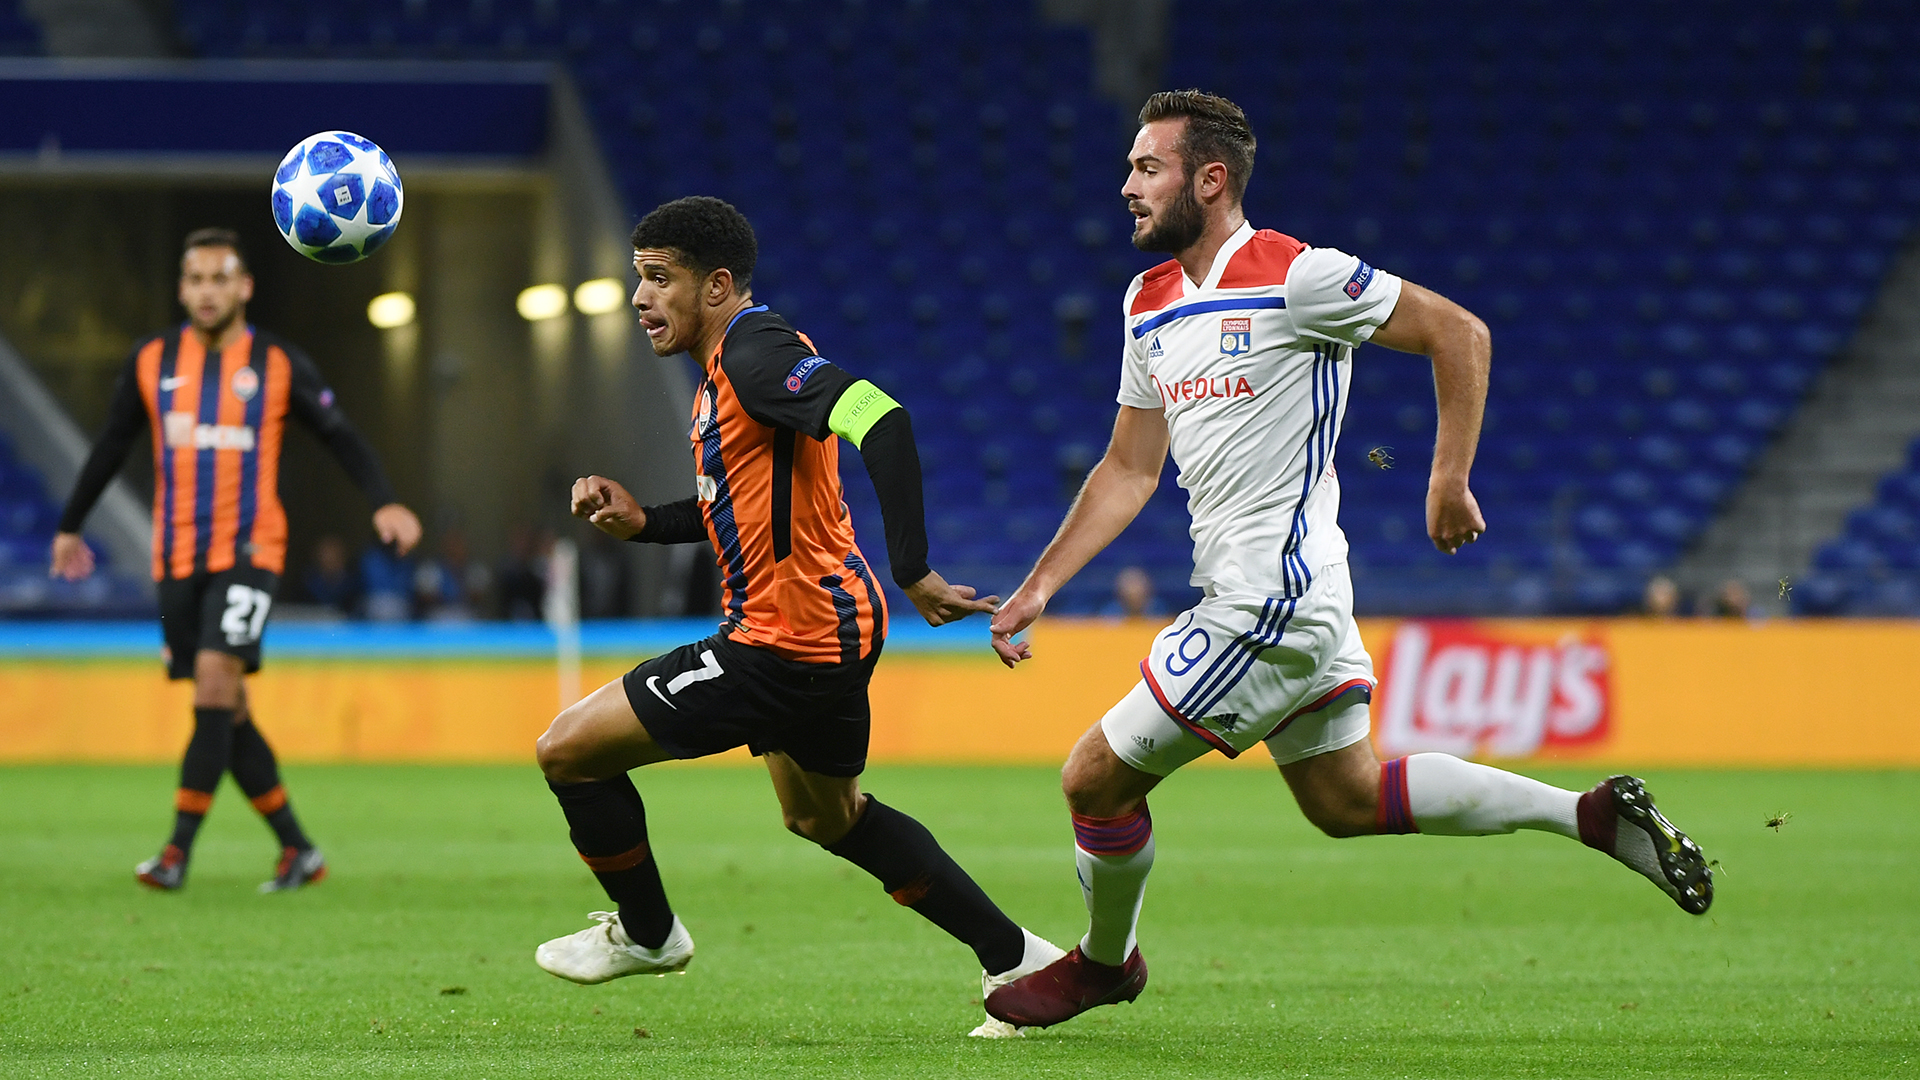 https://shakhtar.com/~/media/fcsd/news/2018/october/3_news/3_lyon-v-shakhtar/gal/dsc_9911.ashx?1543486100639